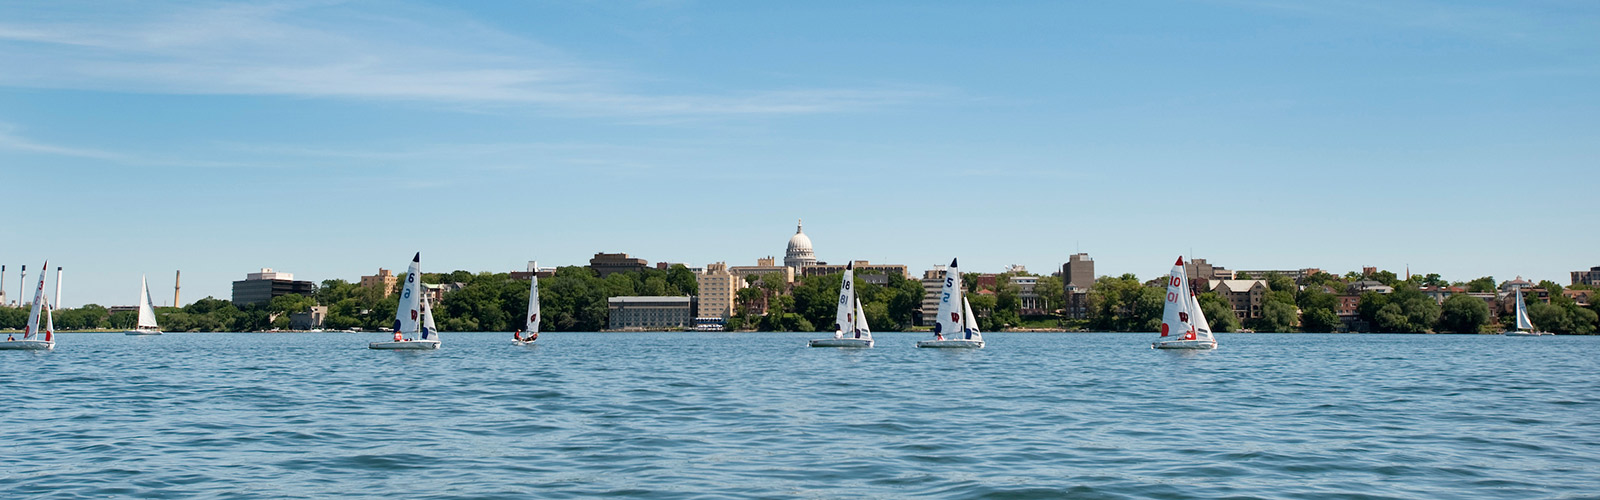 Hoofer sailboats sail on Lake Mendota with the state capitol building in the background.